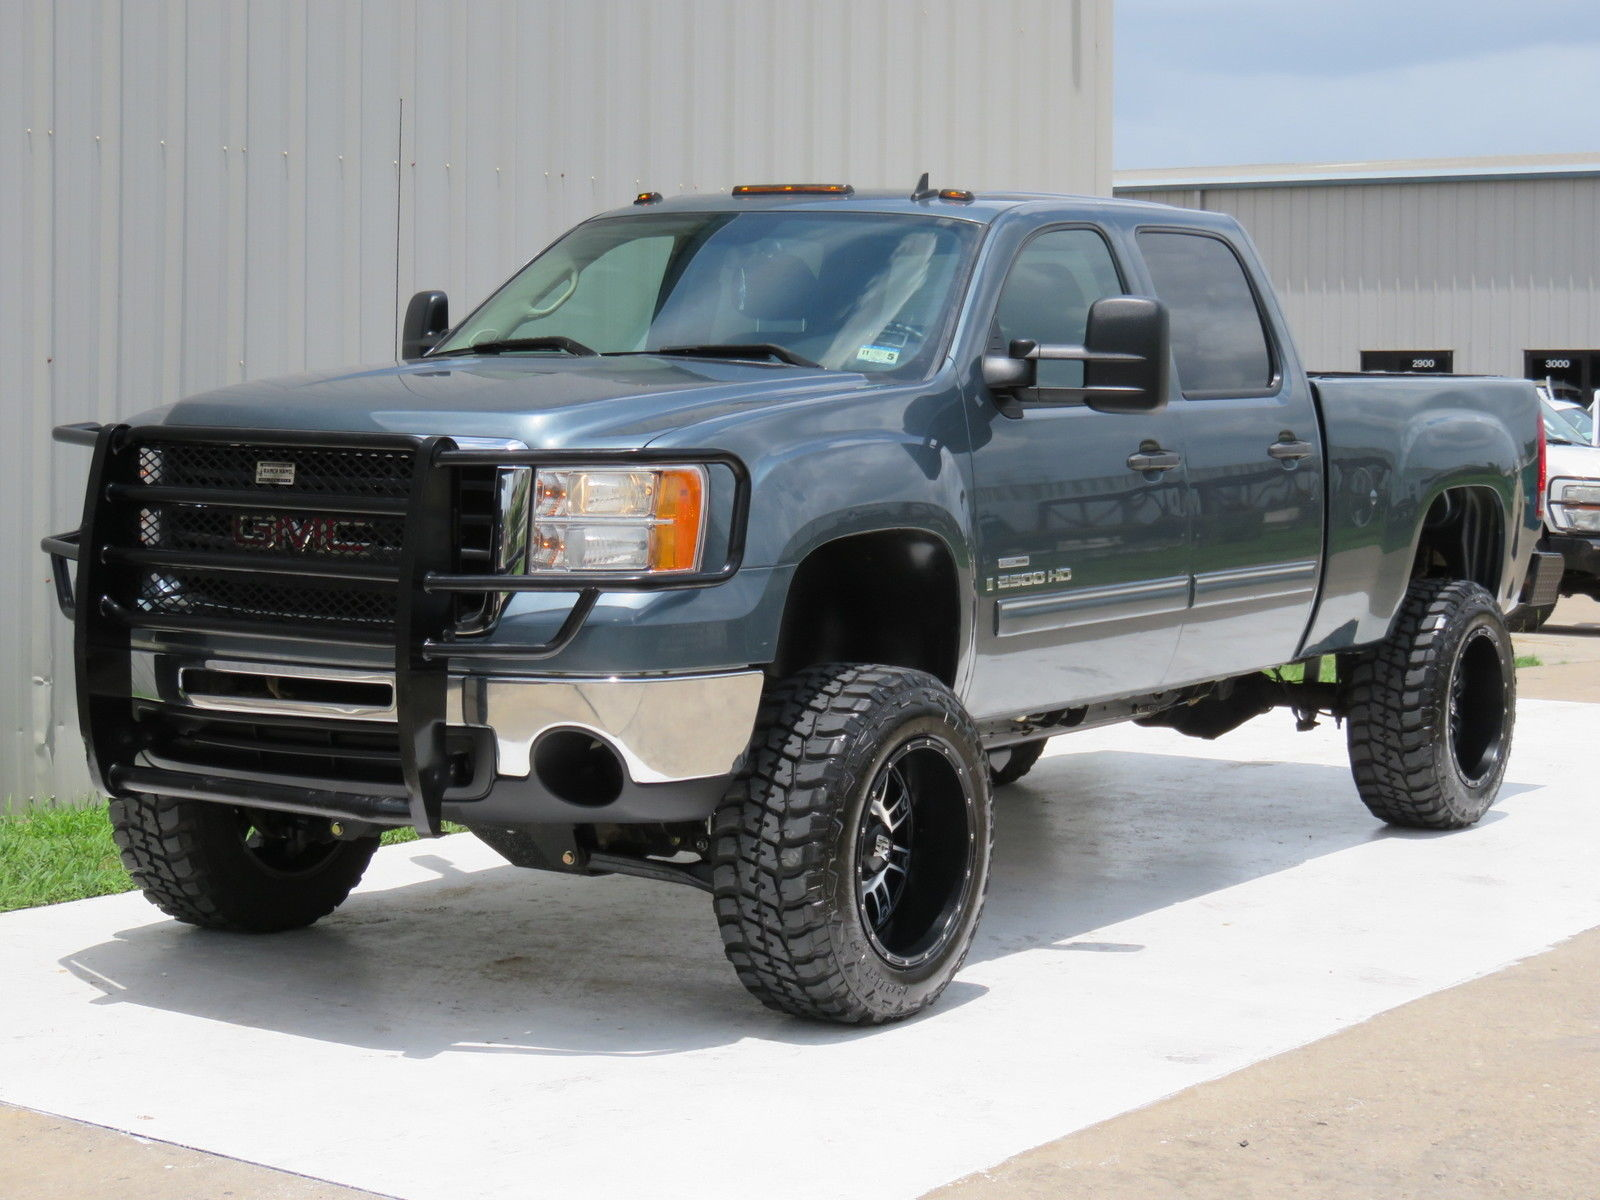 2008 GMC Sierra 2500 Diesel 4×4 for sale